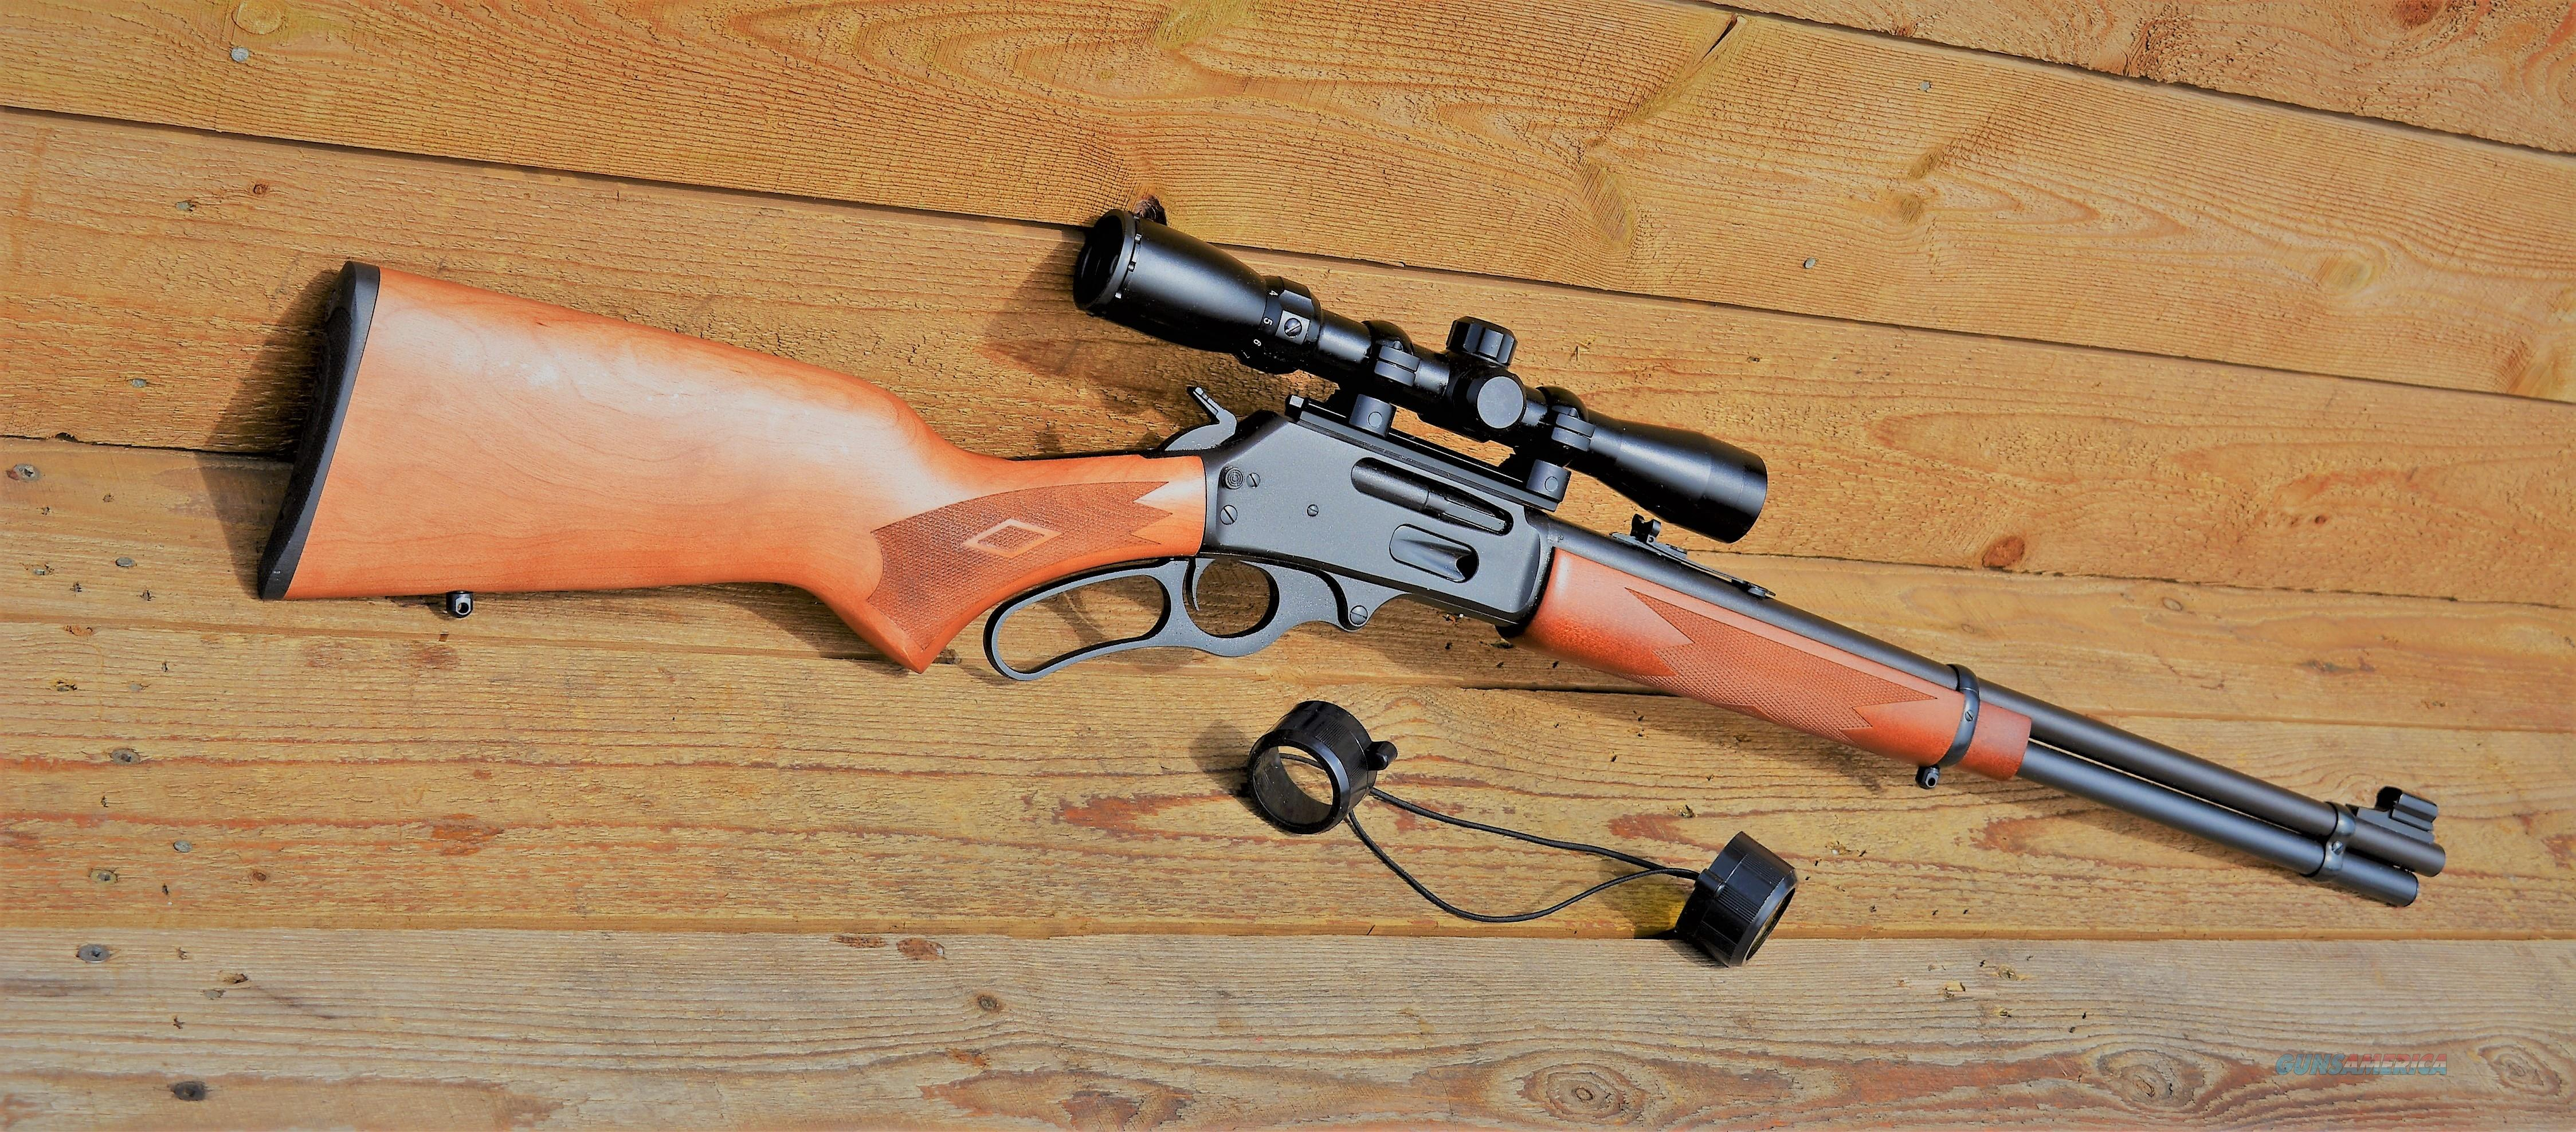 "$33 Sale !! EASY PAY Marlin 336W factory mounted 3-9x32mm scope Lightweight Hunting Rifle Target Gun .30-30 Winchester  20"" Barrel 6 Rounds Laminate Wood furniture Stock W checkering Blued steel Adjustable folding brass bead sight 70521  Guns > Rifles > Marlin Rifles > Modern > Lever Action"